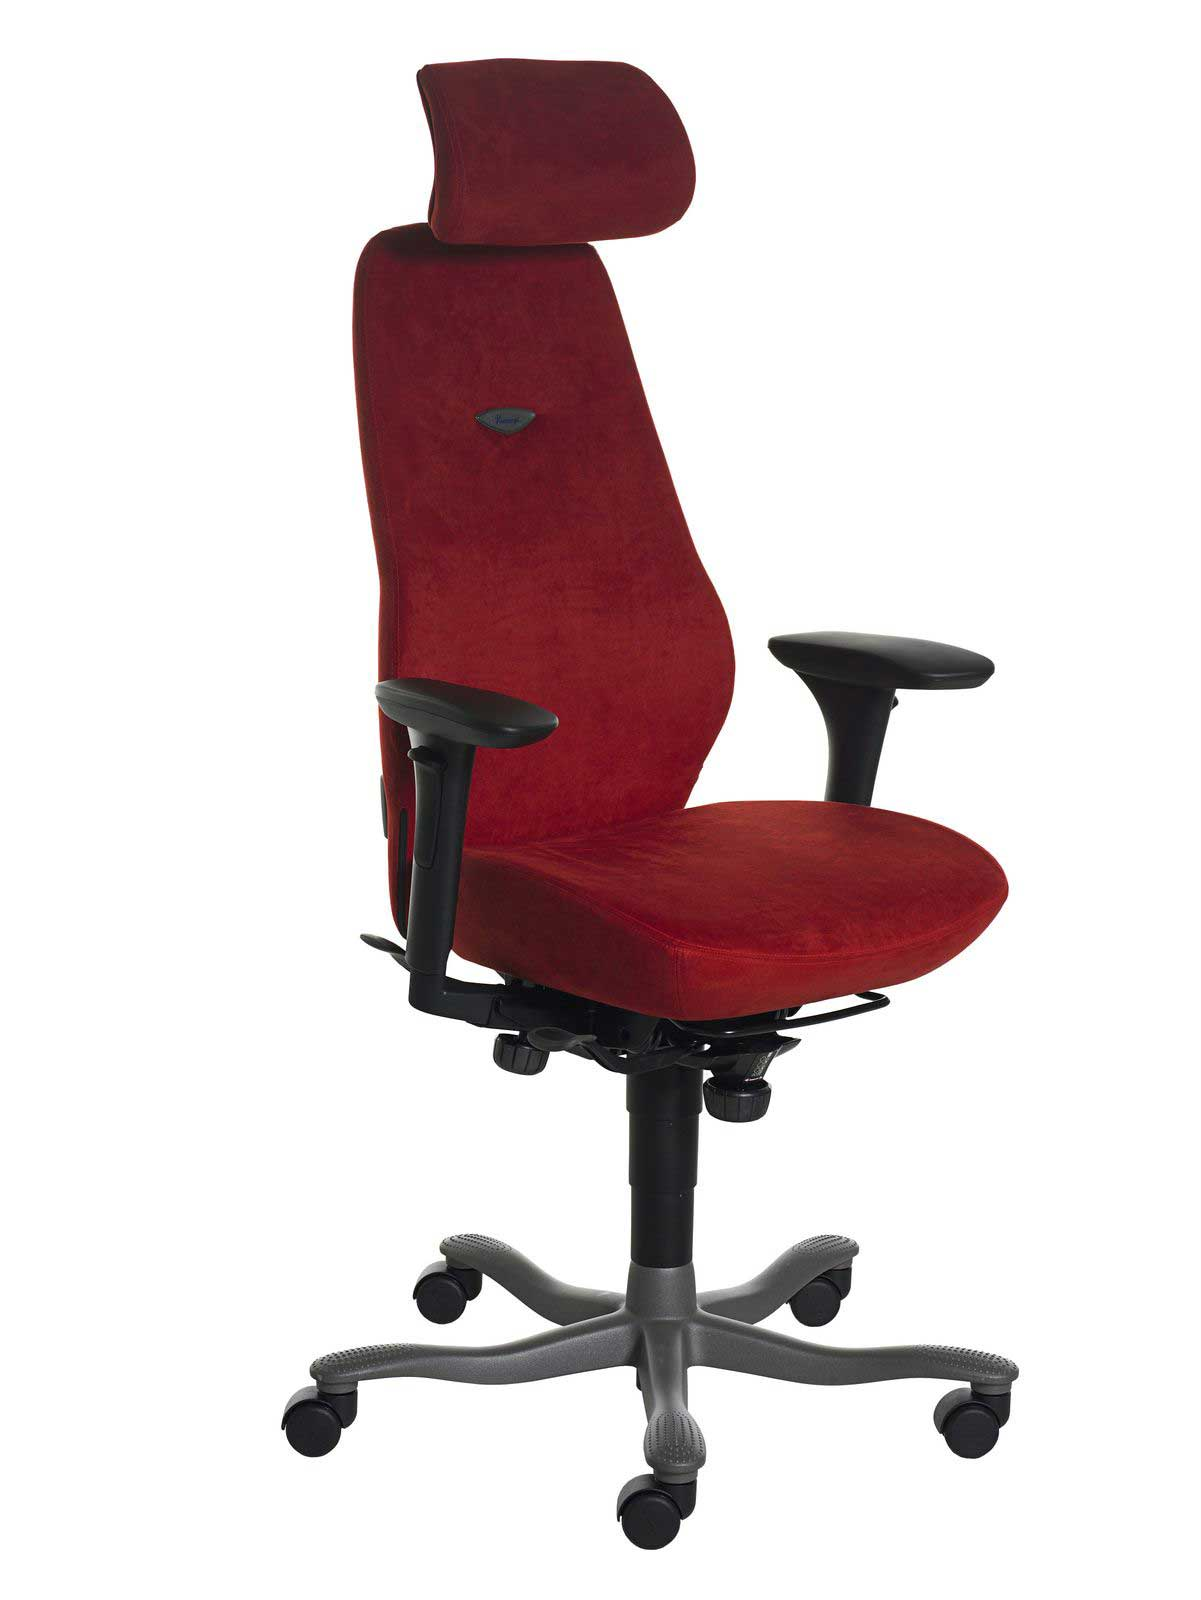 Kinnarp tall ergonomic desk chairs